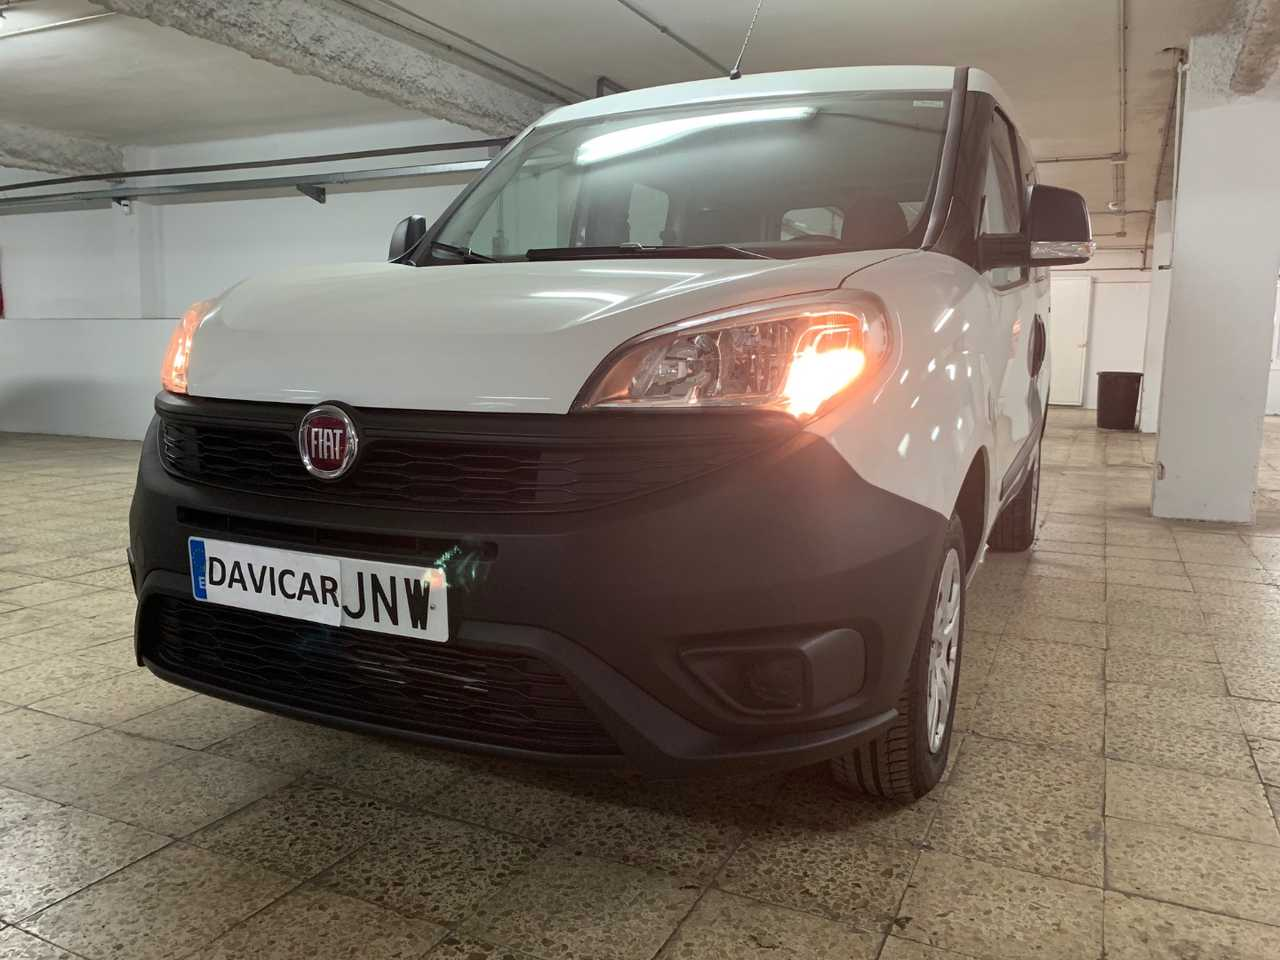 Fiat Doblo PANORAMA POP 1.3 MULT. 90 CV IMPECABLE FINANCIACION AL 6,95%  - Foto 1